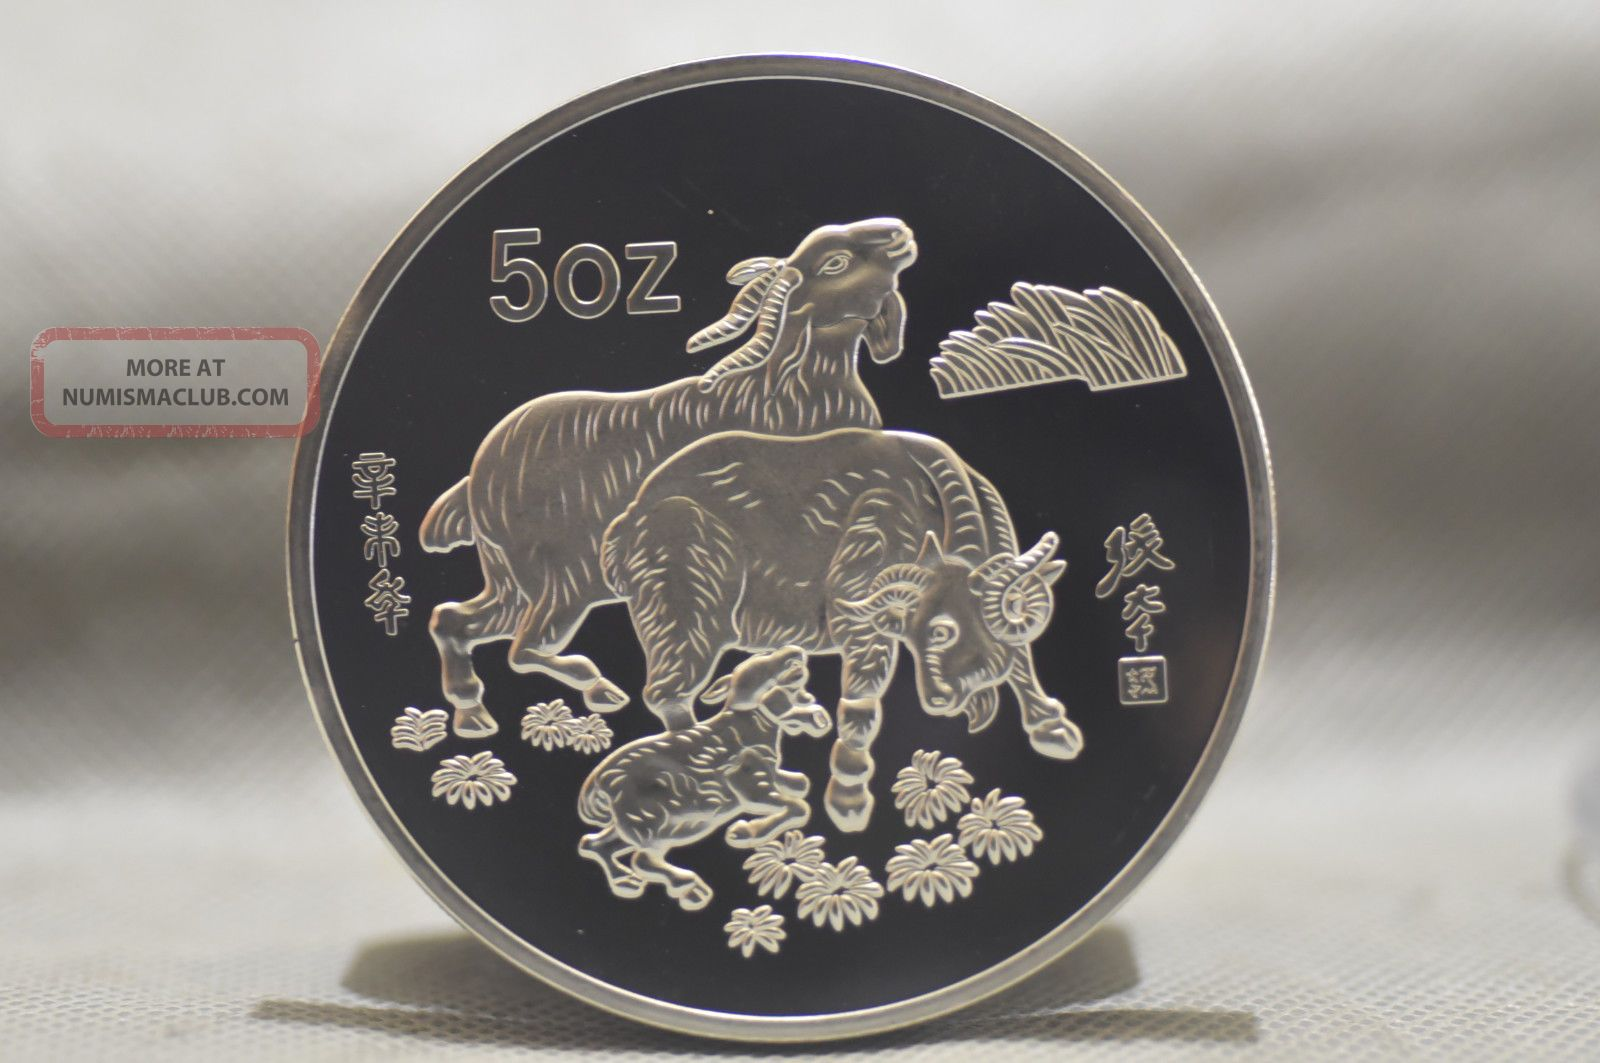 99 99 Chinese 1991 Zodiac 5oz Silver Coin Year Of The